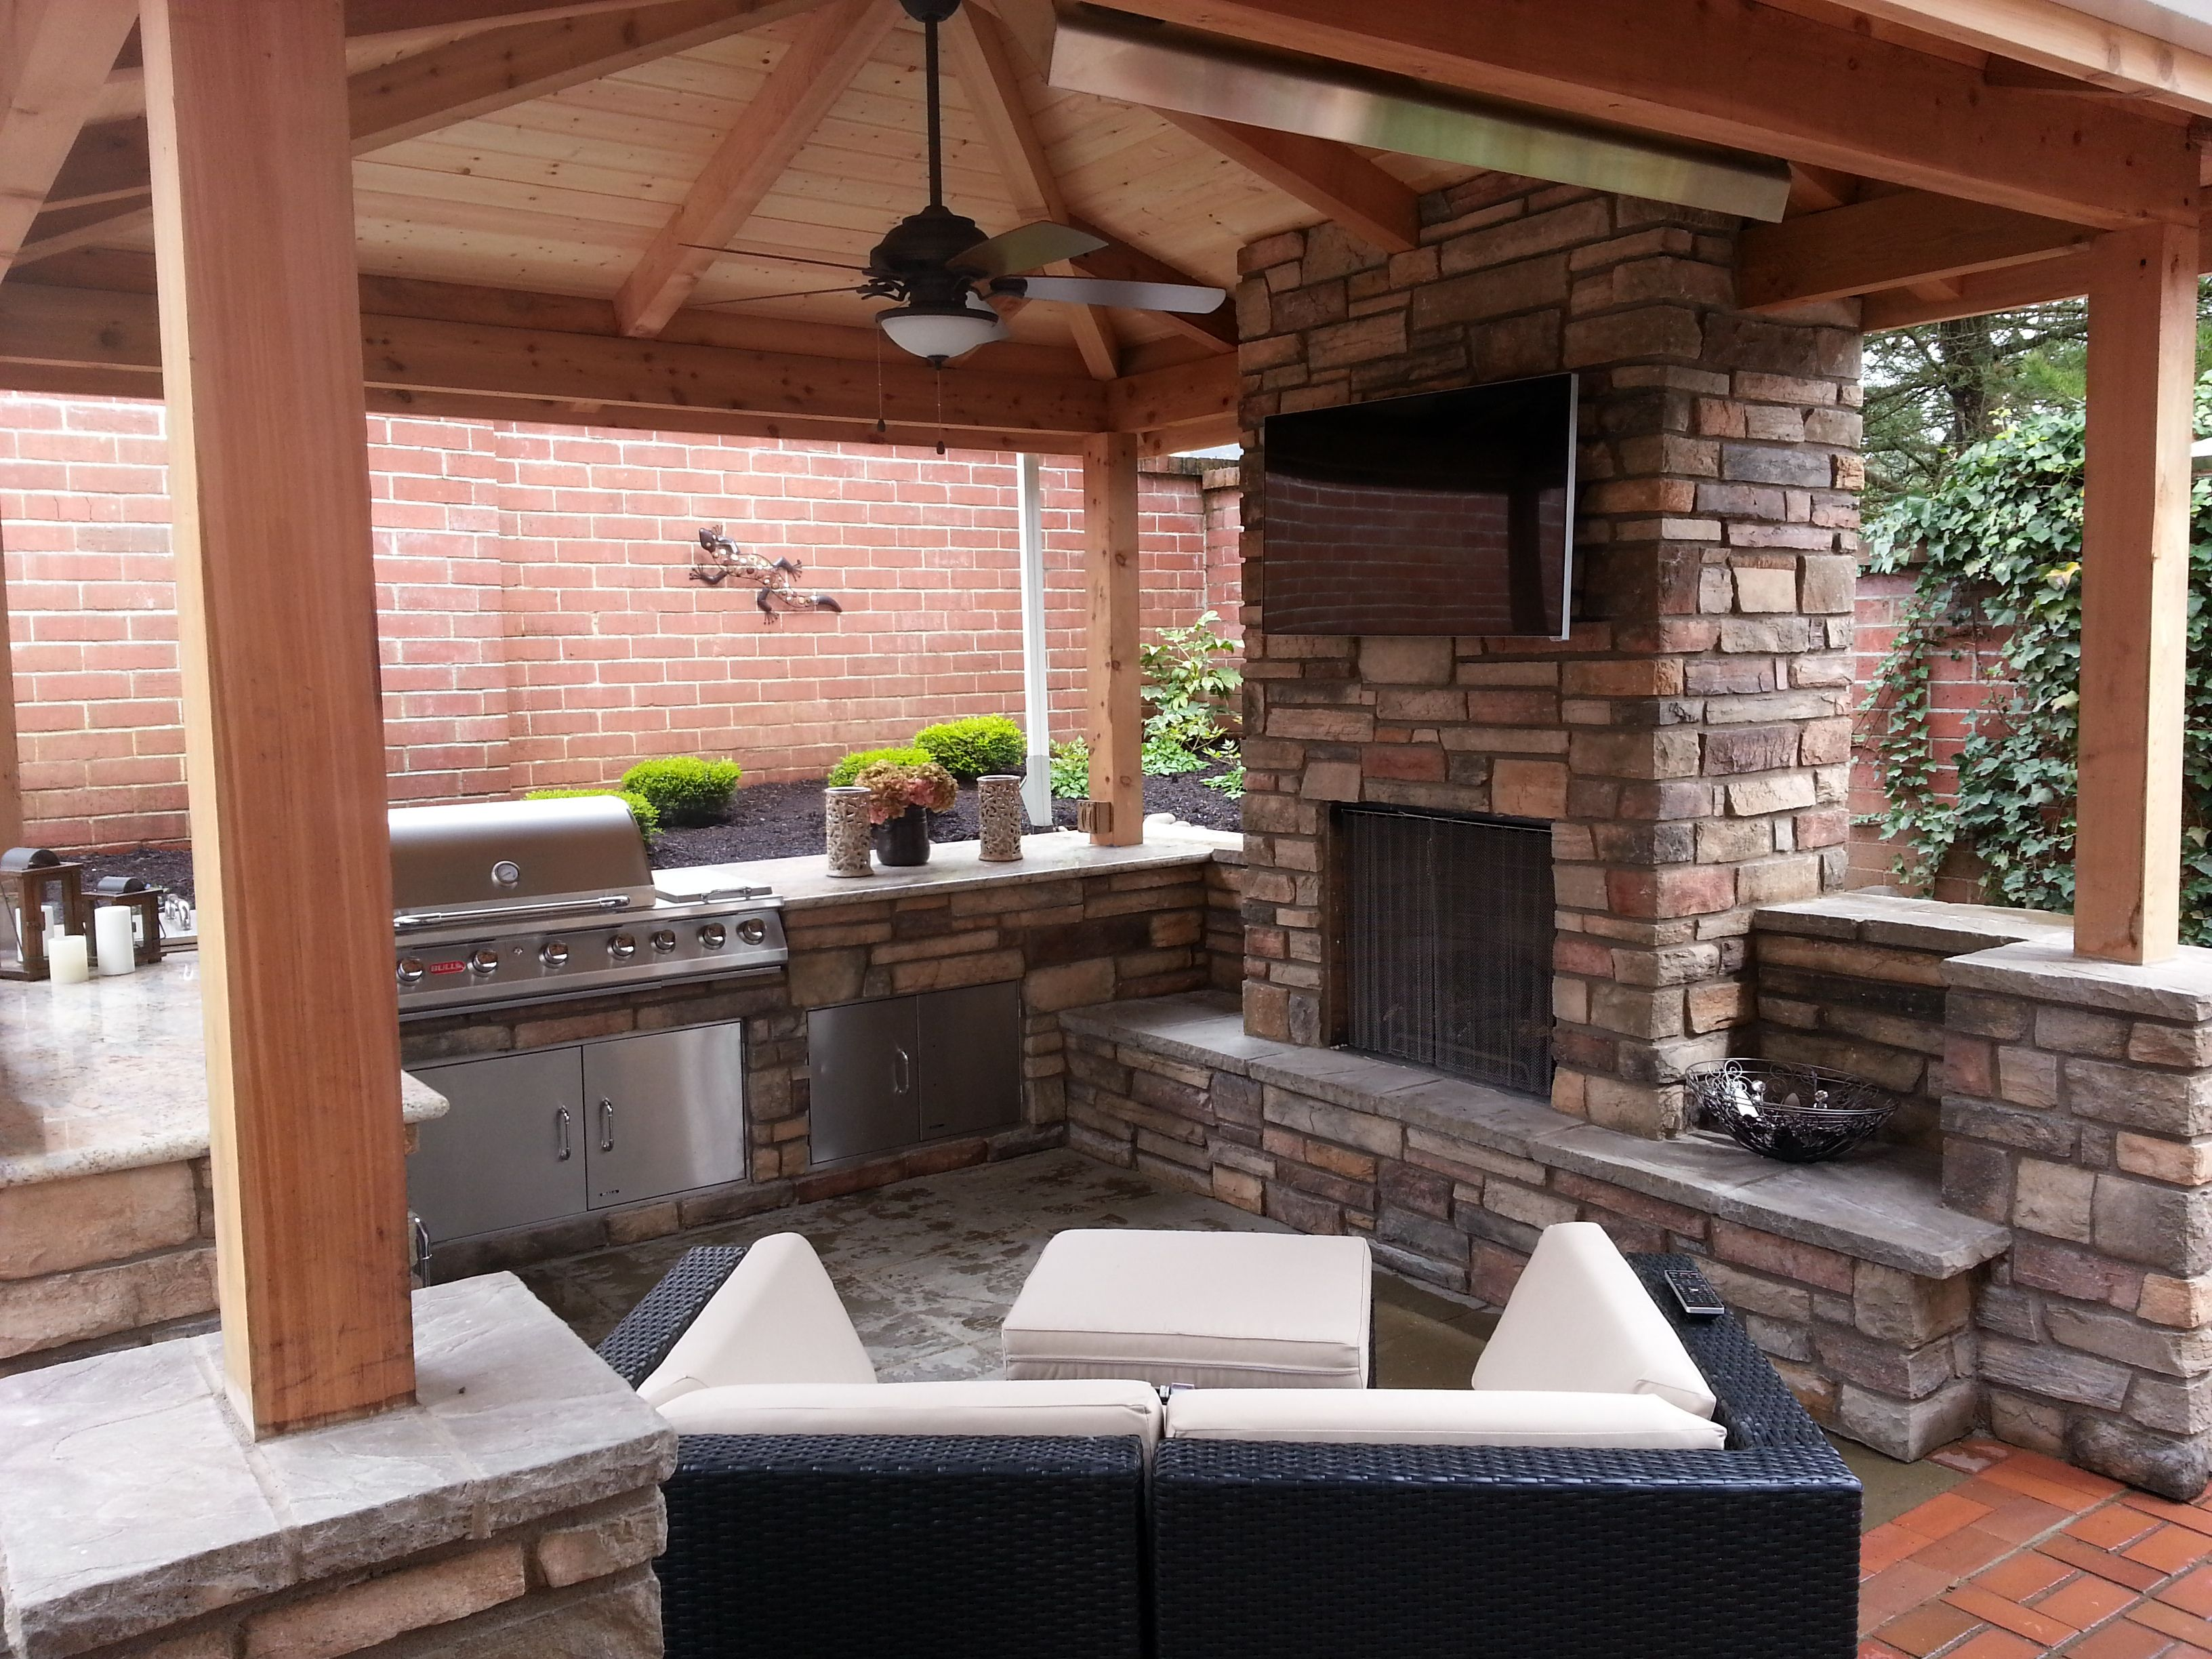 Outdoor Fireplace Outdoor Living Outdoor Kitchen Covered Patio Granite Countertops Stone